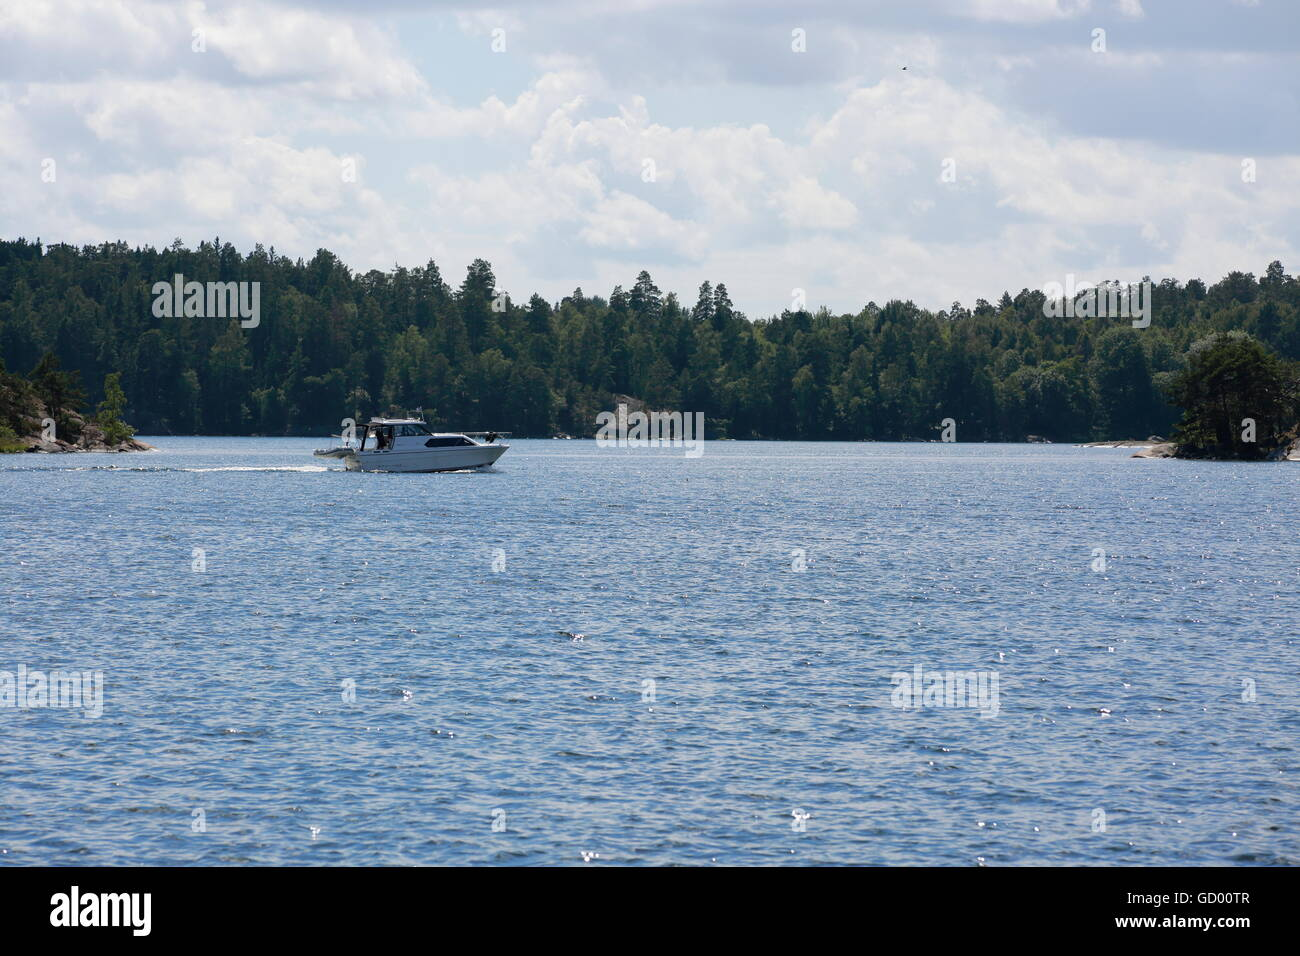 A boat in Stockholm archipelago on a summer day. - Stock Image